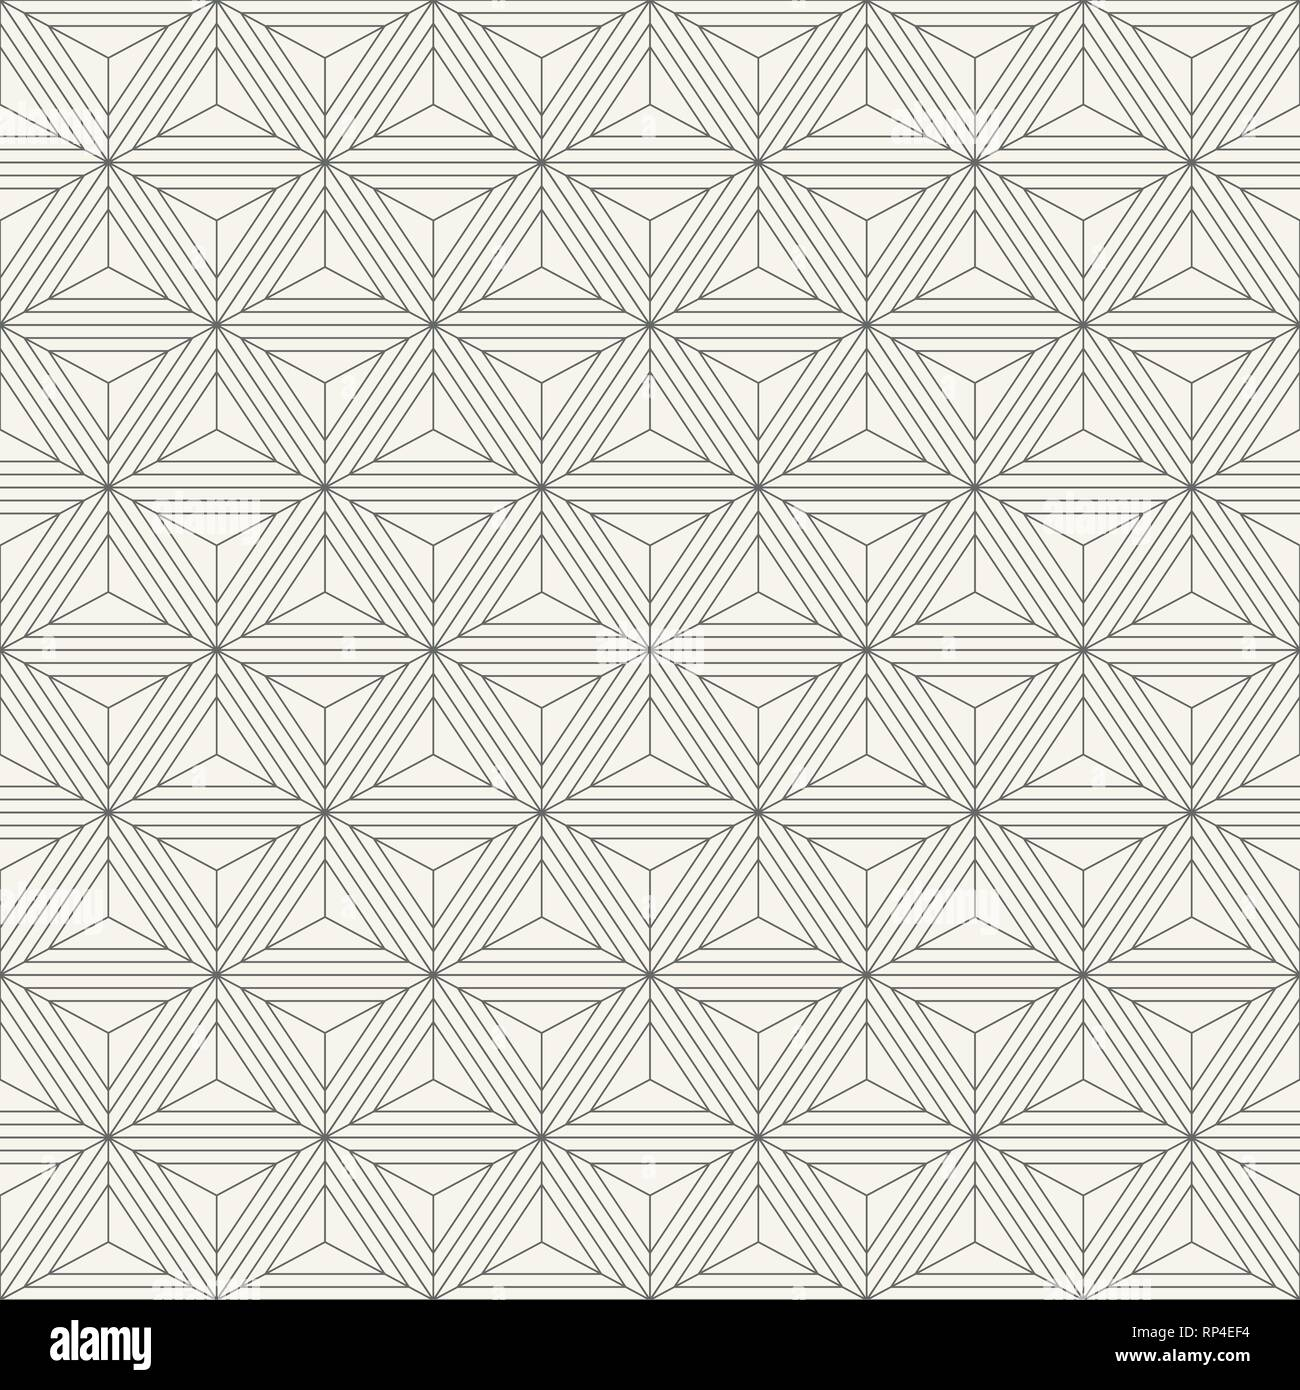 Abstract geometric simple pattern of triangles. Modern stylish texture. Repeating geometric tiles. Simple symmetric composition of triangles. - Stock Image